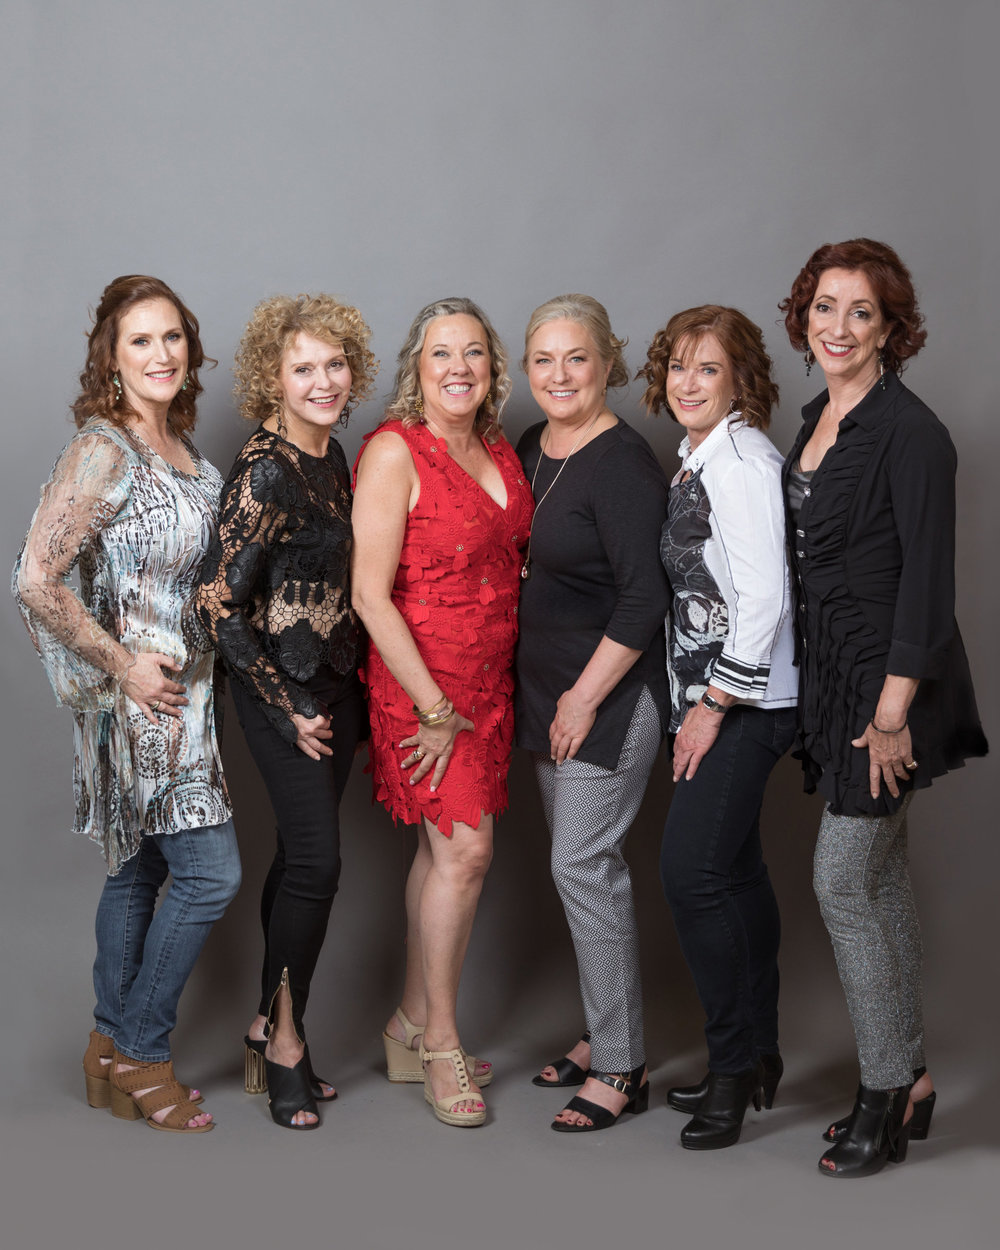 portrait party gray backdrop with 6 women in dressy casual clothing on their way to see Taylor Swift makeup by kim baker beauty san jose caliornia makeup artist